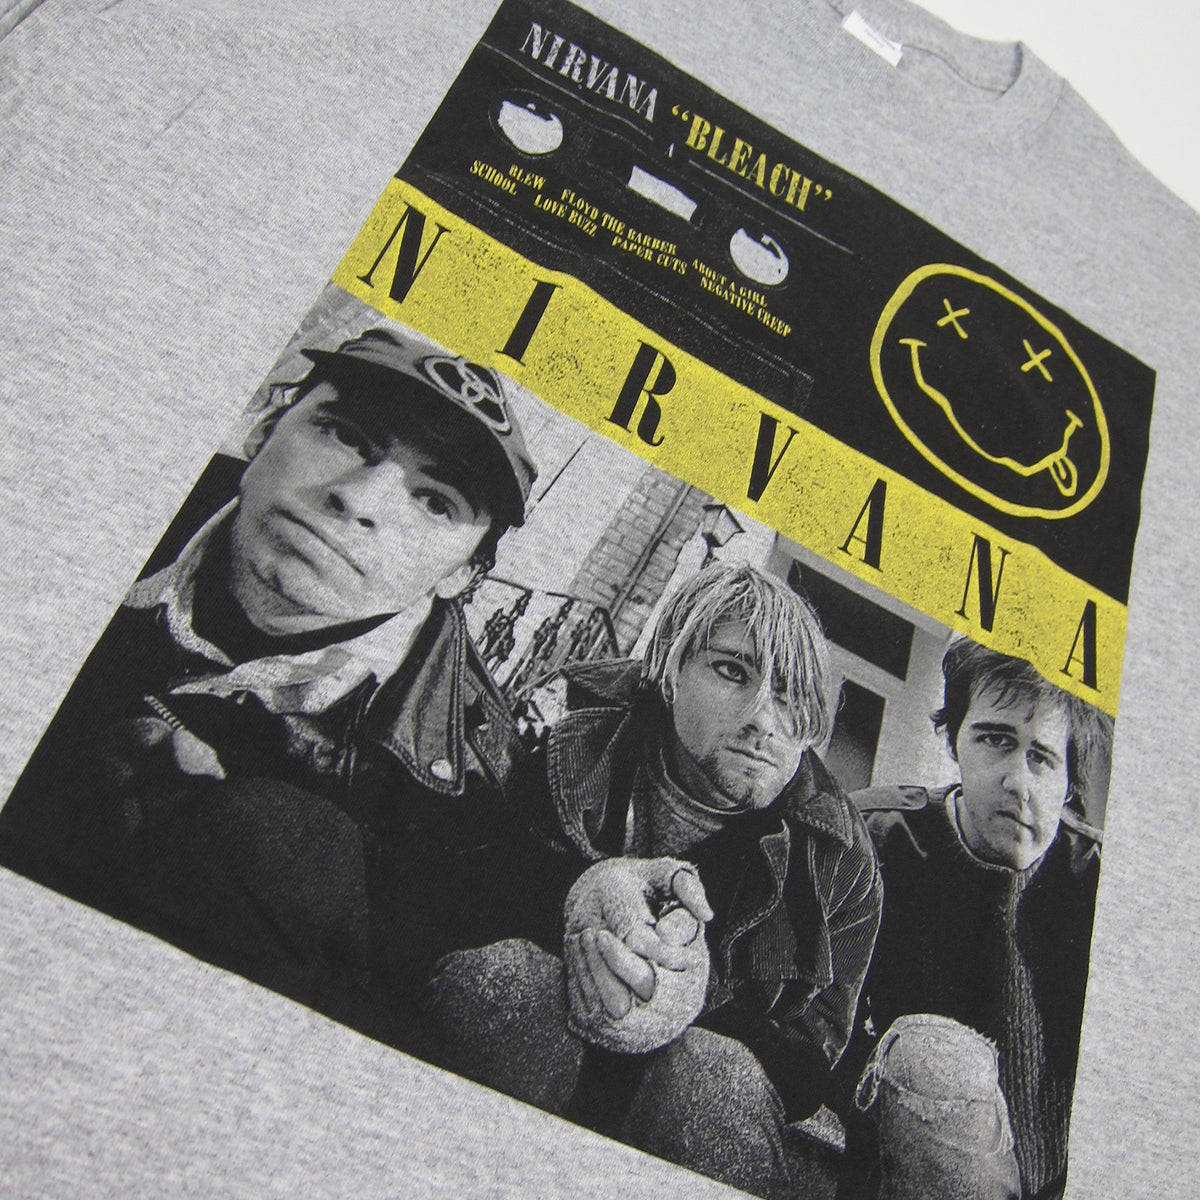 Nirvana: Bleach Cassette Photo Shirt - Heather Grey